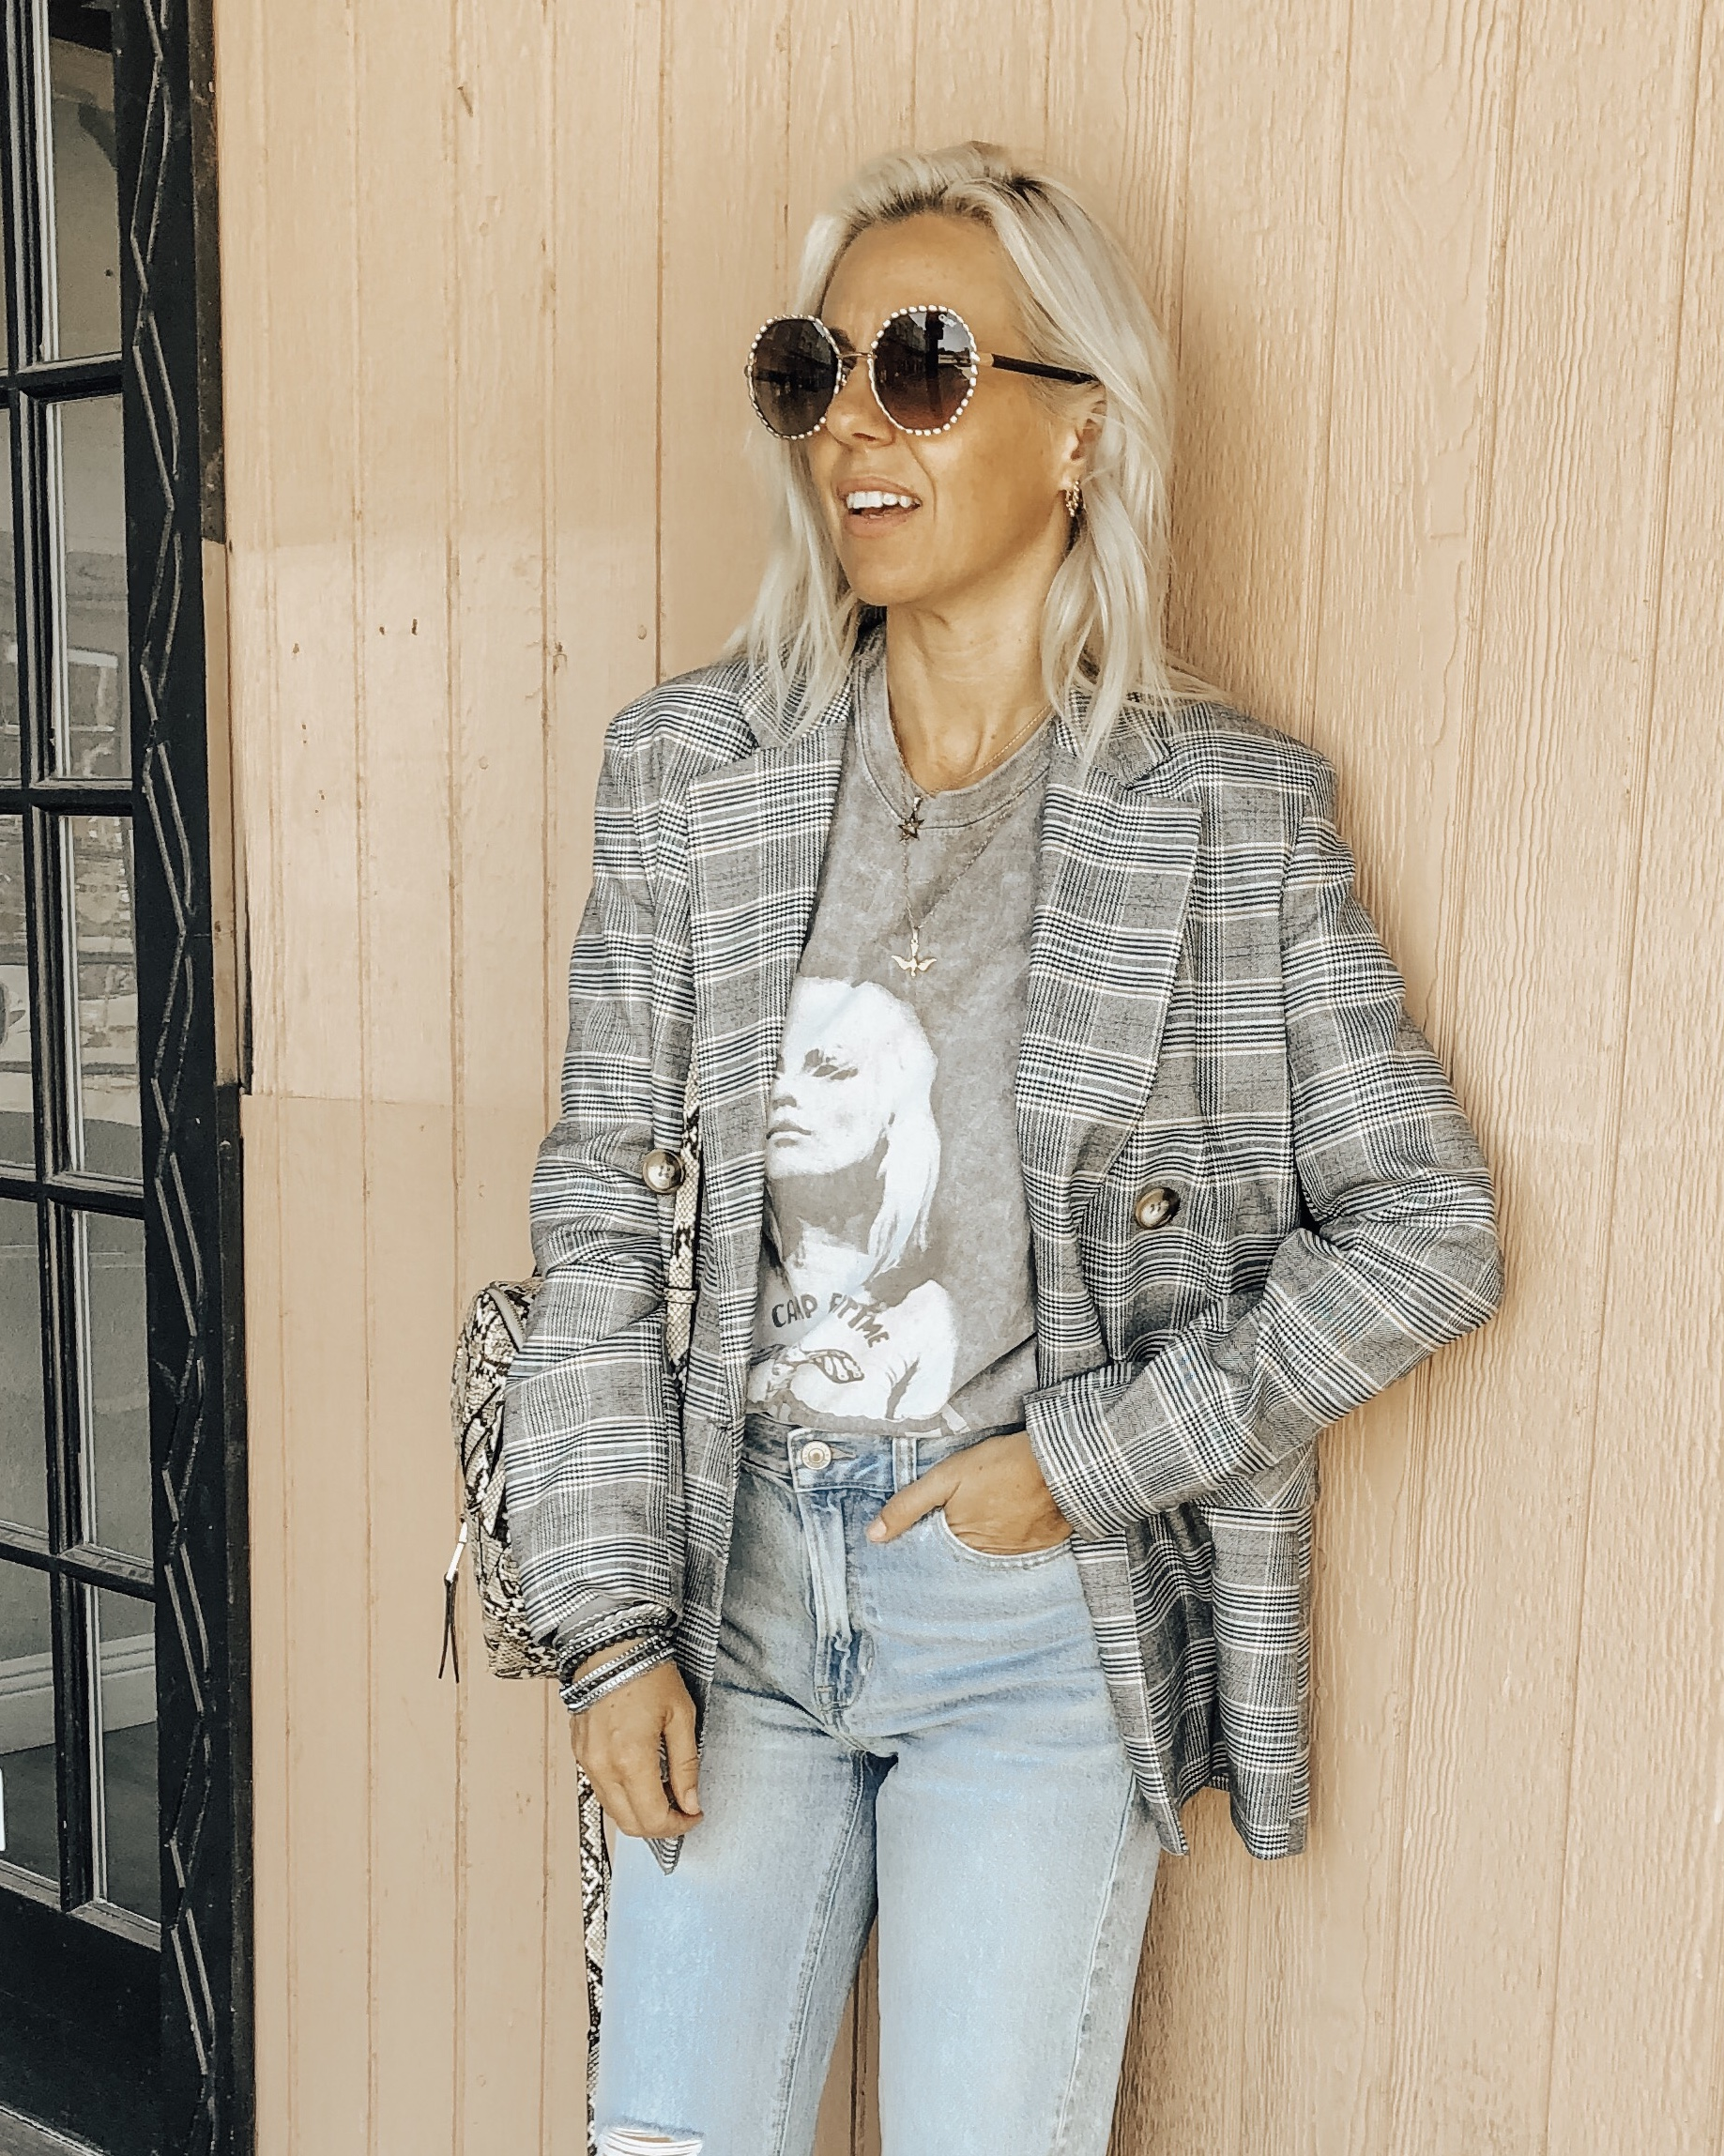 THE BLAZER- A MUST HAVE PIECE FOR FALL- Jaclyn De Leon Style + one big trend this season is the boyfriend blazer. I paired this plaid one with a graphic tee and mom jeans. I'm sharing all the best affordable blazers